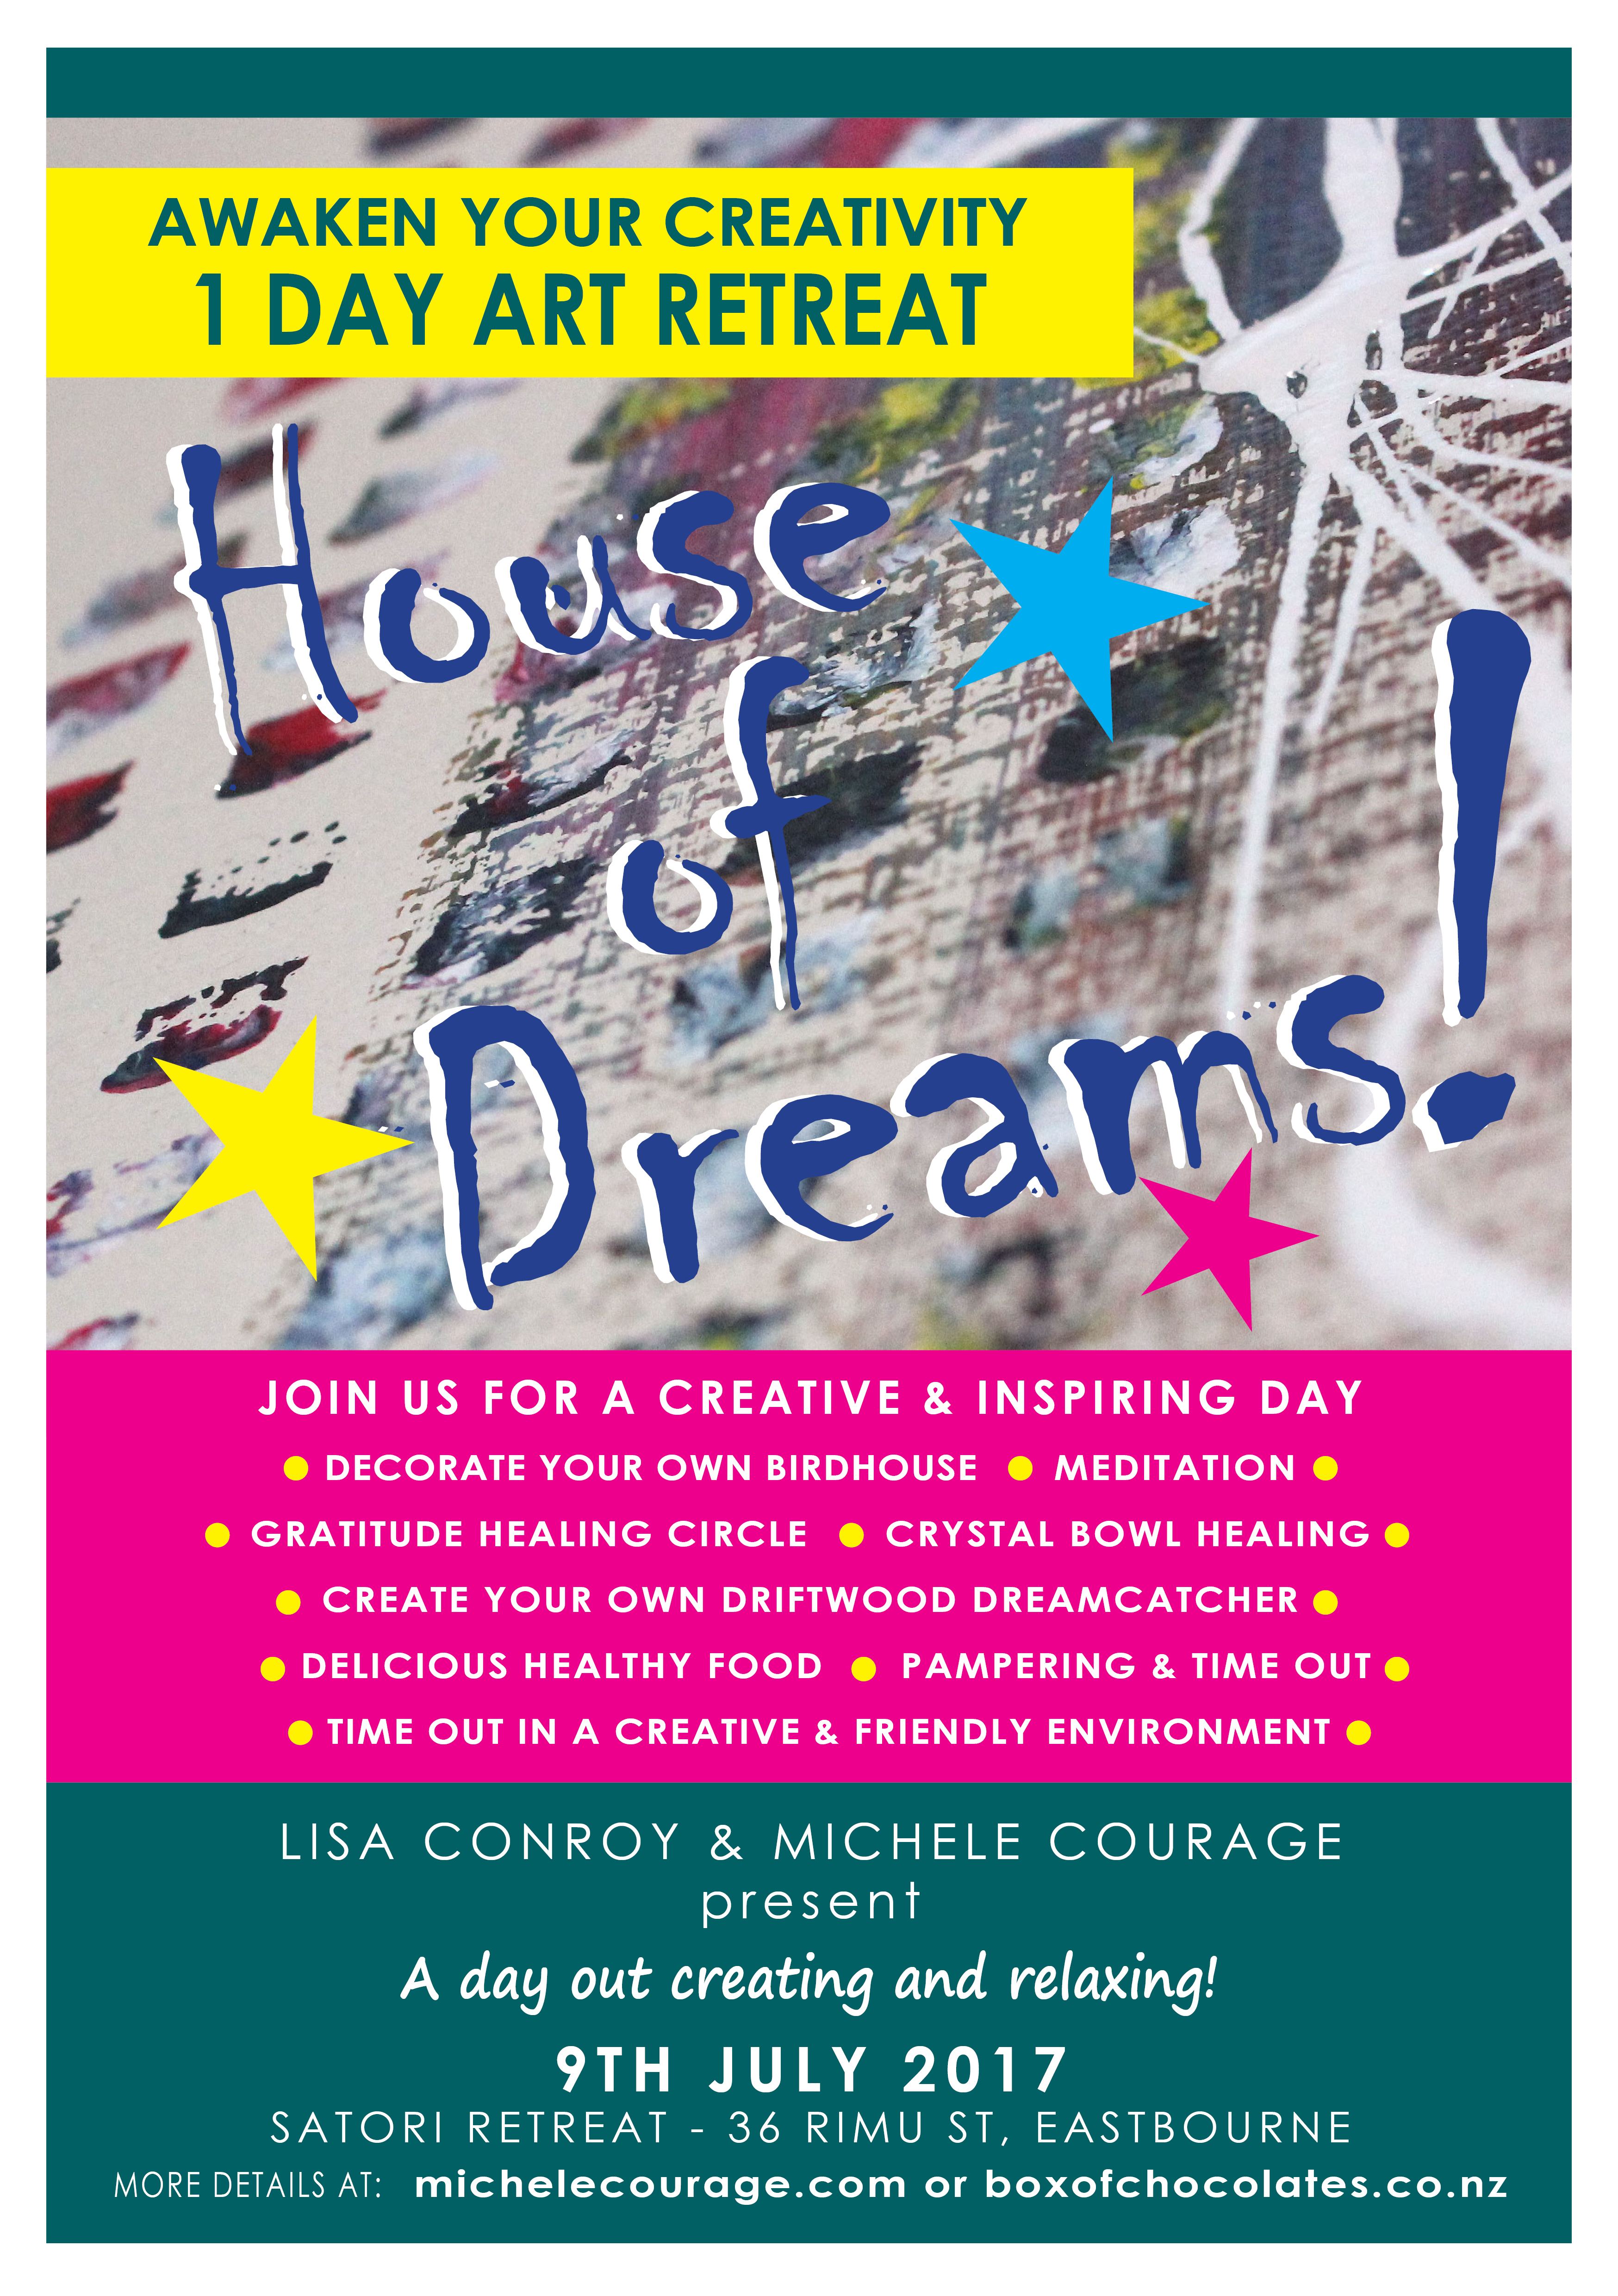 Join us on our House of Dreams - 1 Day ART retreat